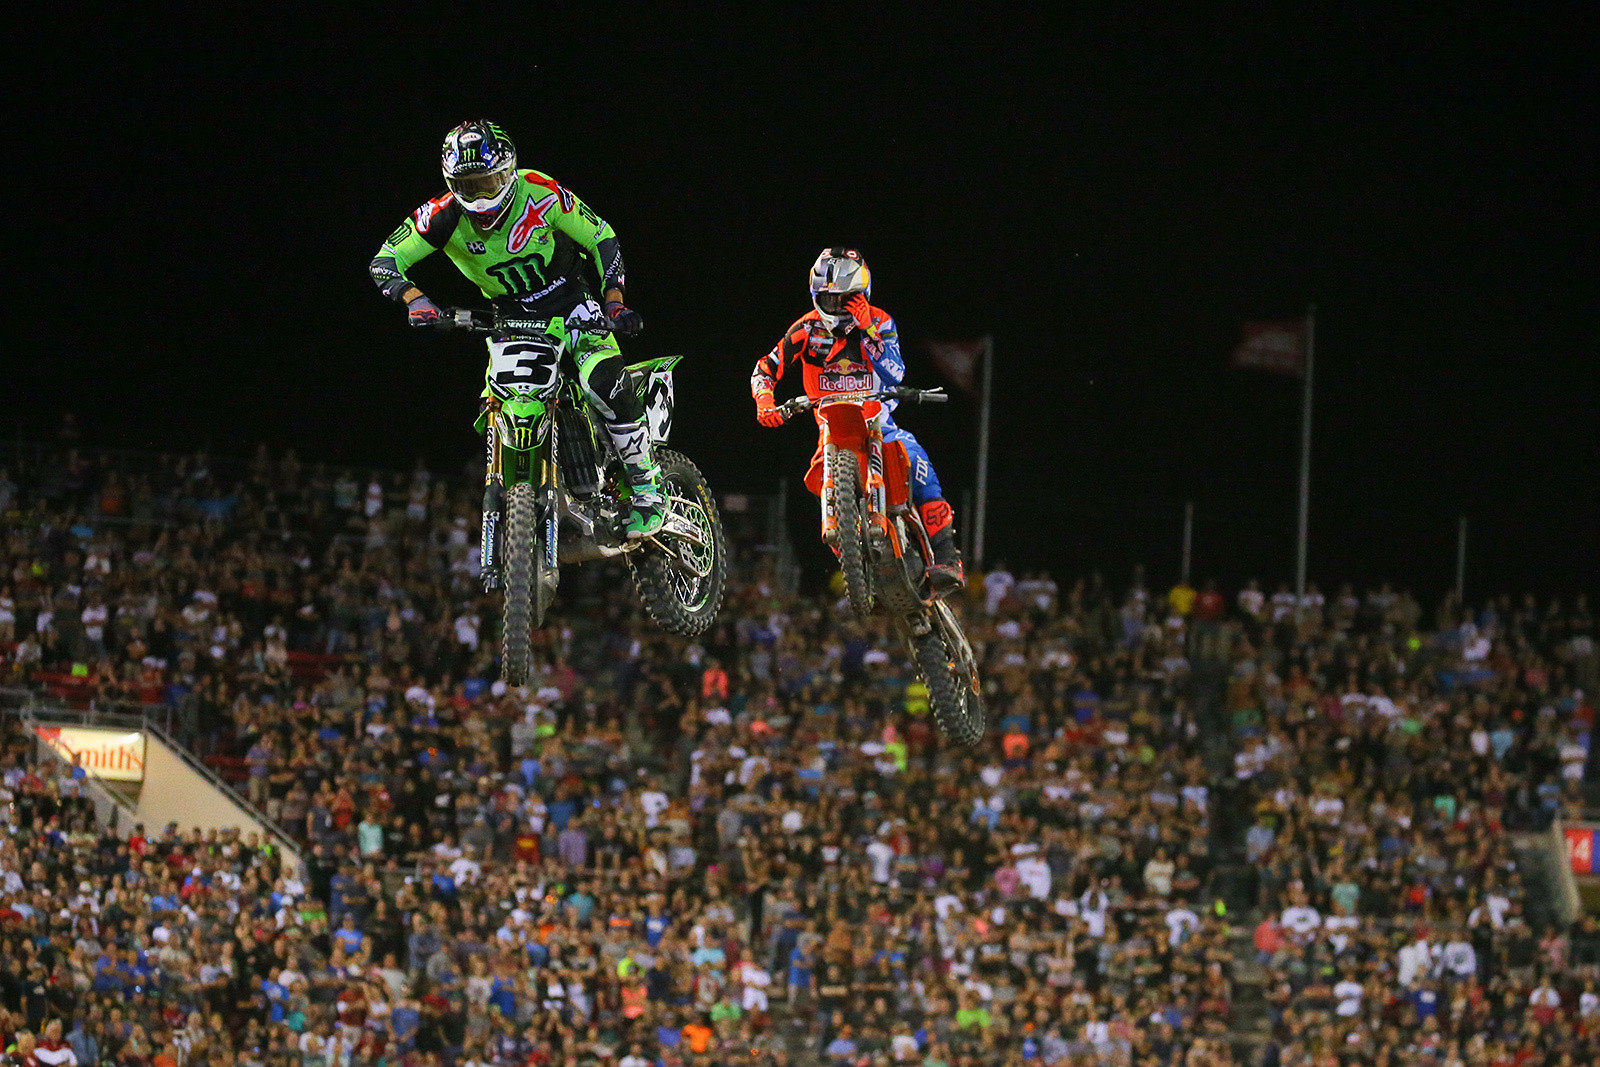 Just like in the 250 main, the crowd was on their feet for the duration of the 450 main. These two kept things close.